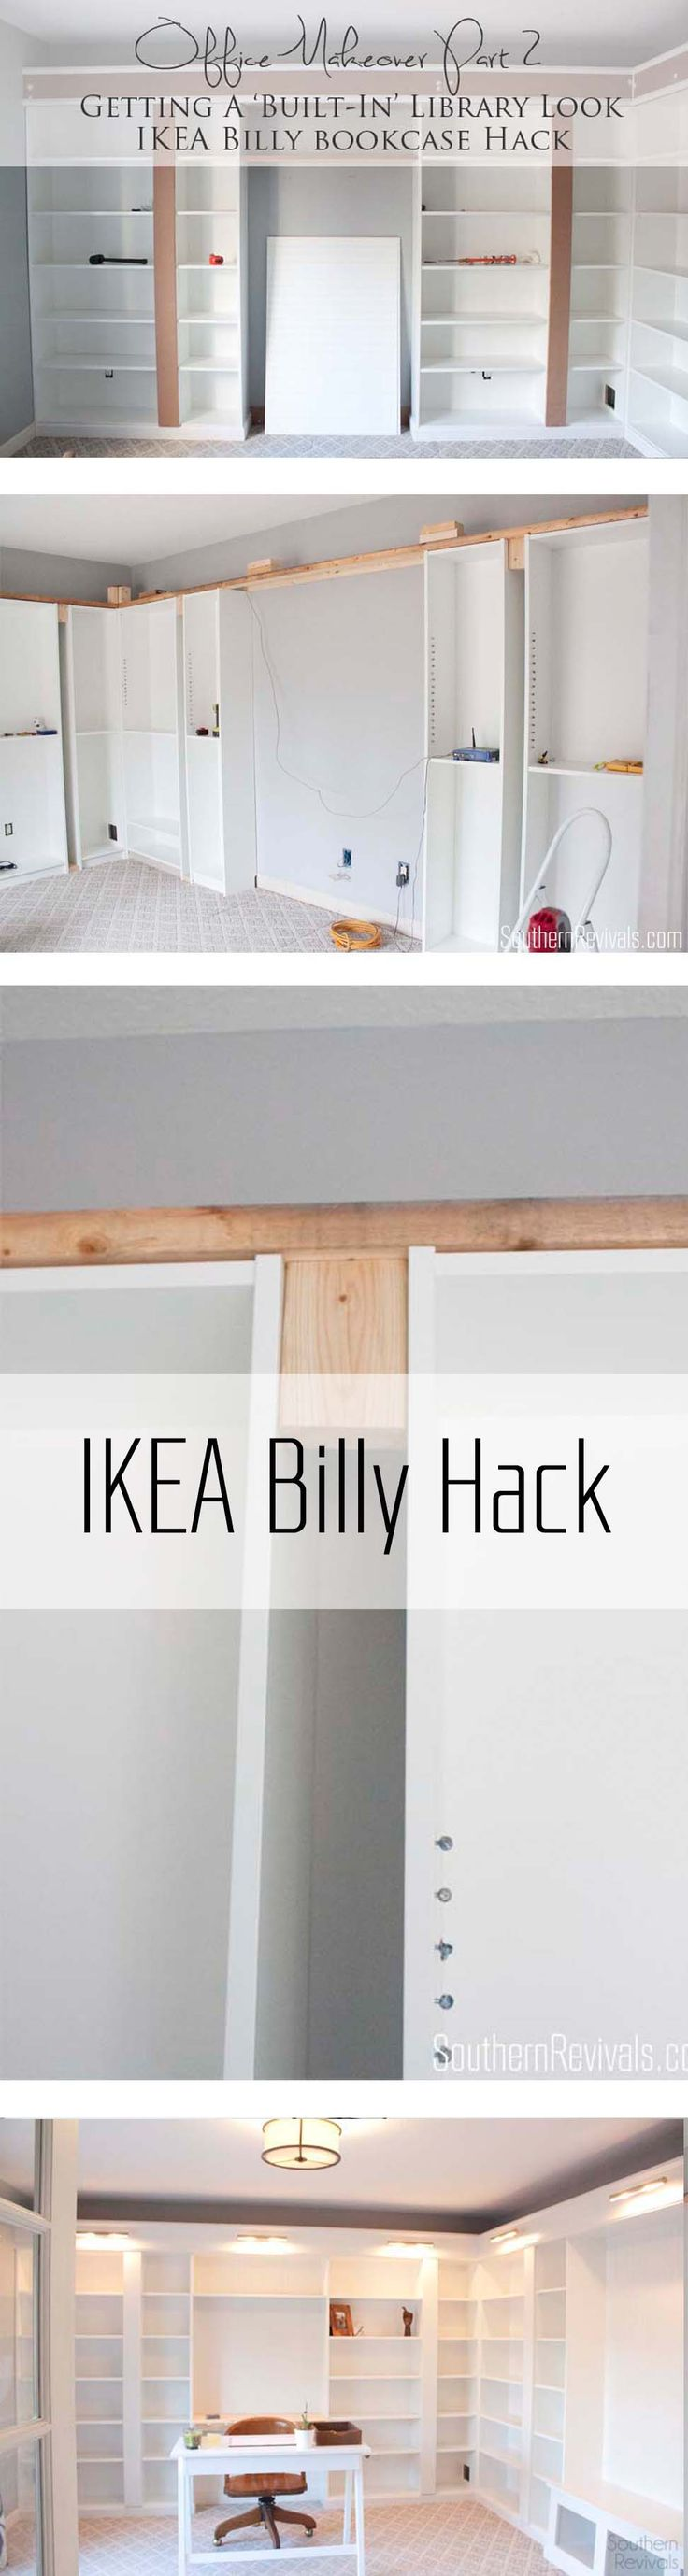 590 best Ikea HACKS images on Pinterest For the home Kitchens and